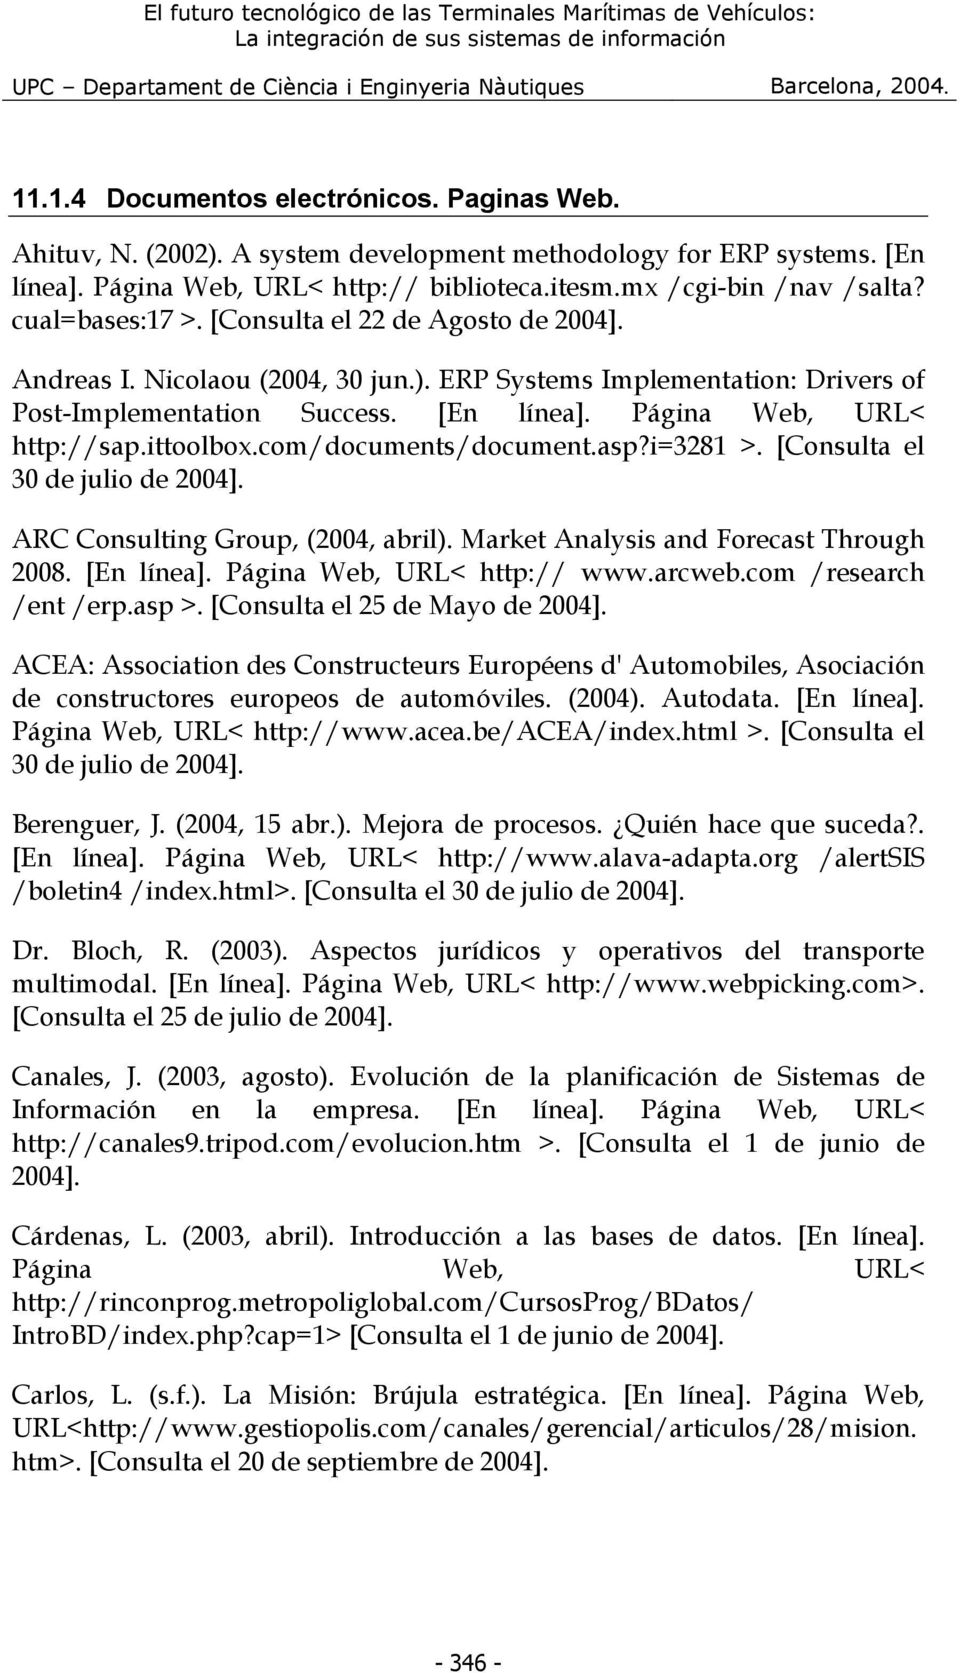 ittoolbox.com/documents/document.asp?i=3281 >. [Consulta el 30 de julio de 2004]. ARC Consulting Group, (2004, abril). Market Analysis and Forecast Through 2008. [En línea].